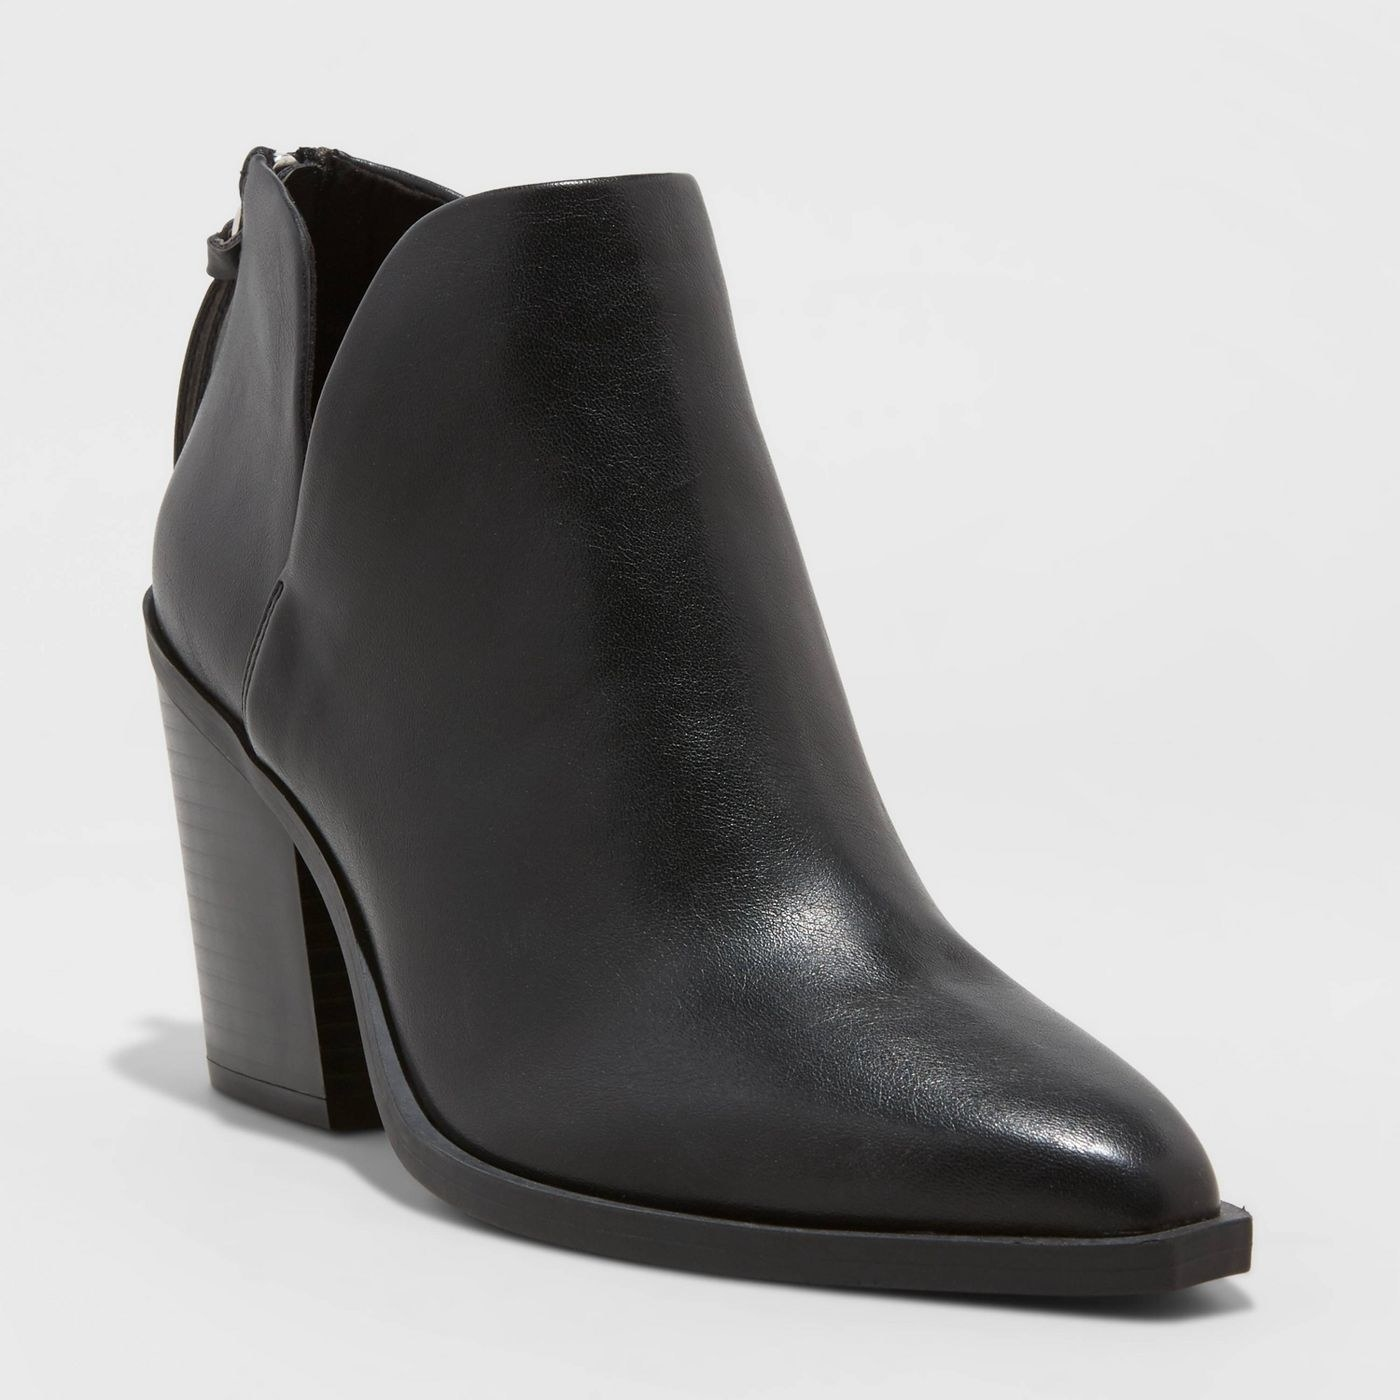 The bootie in black